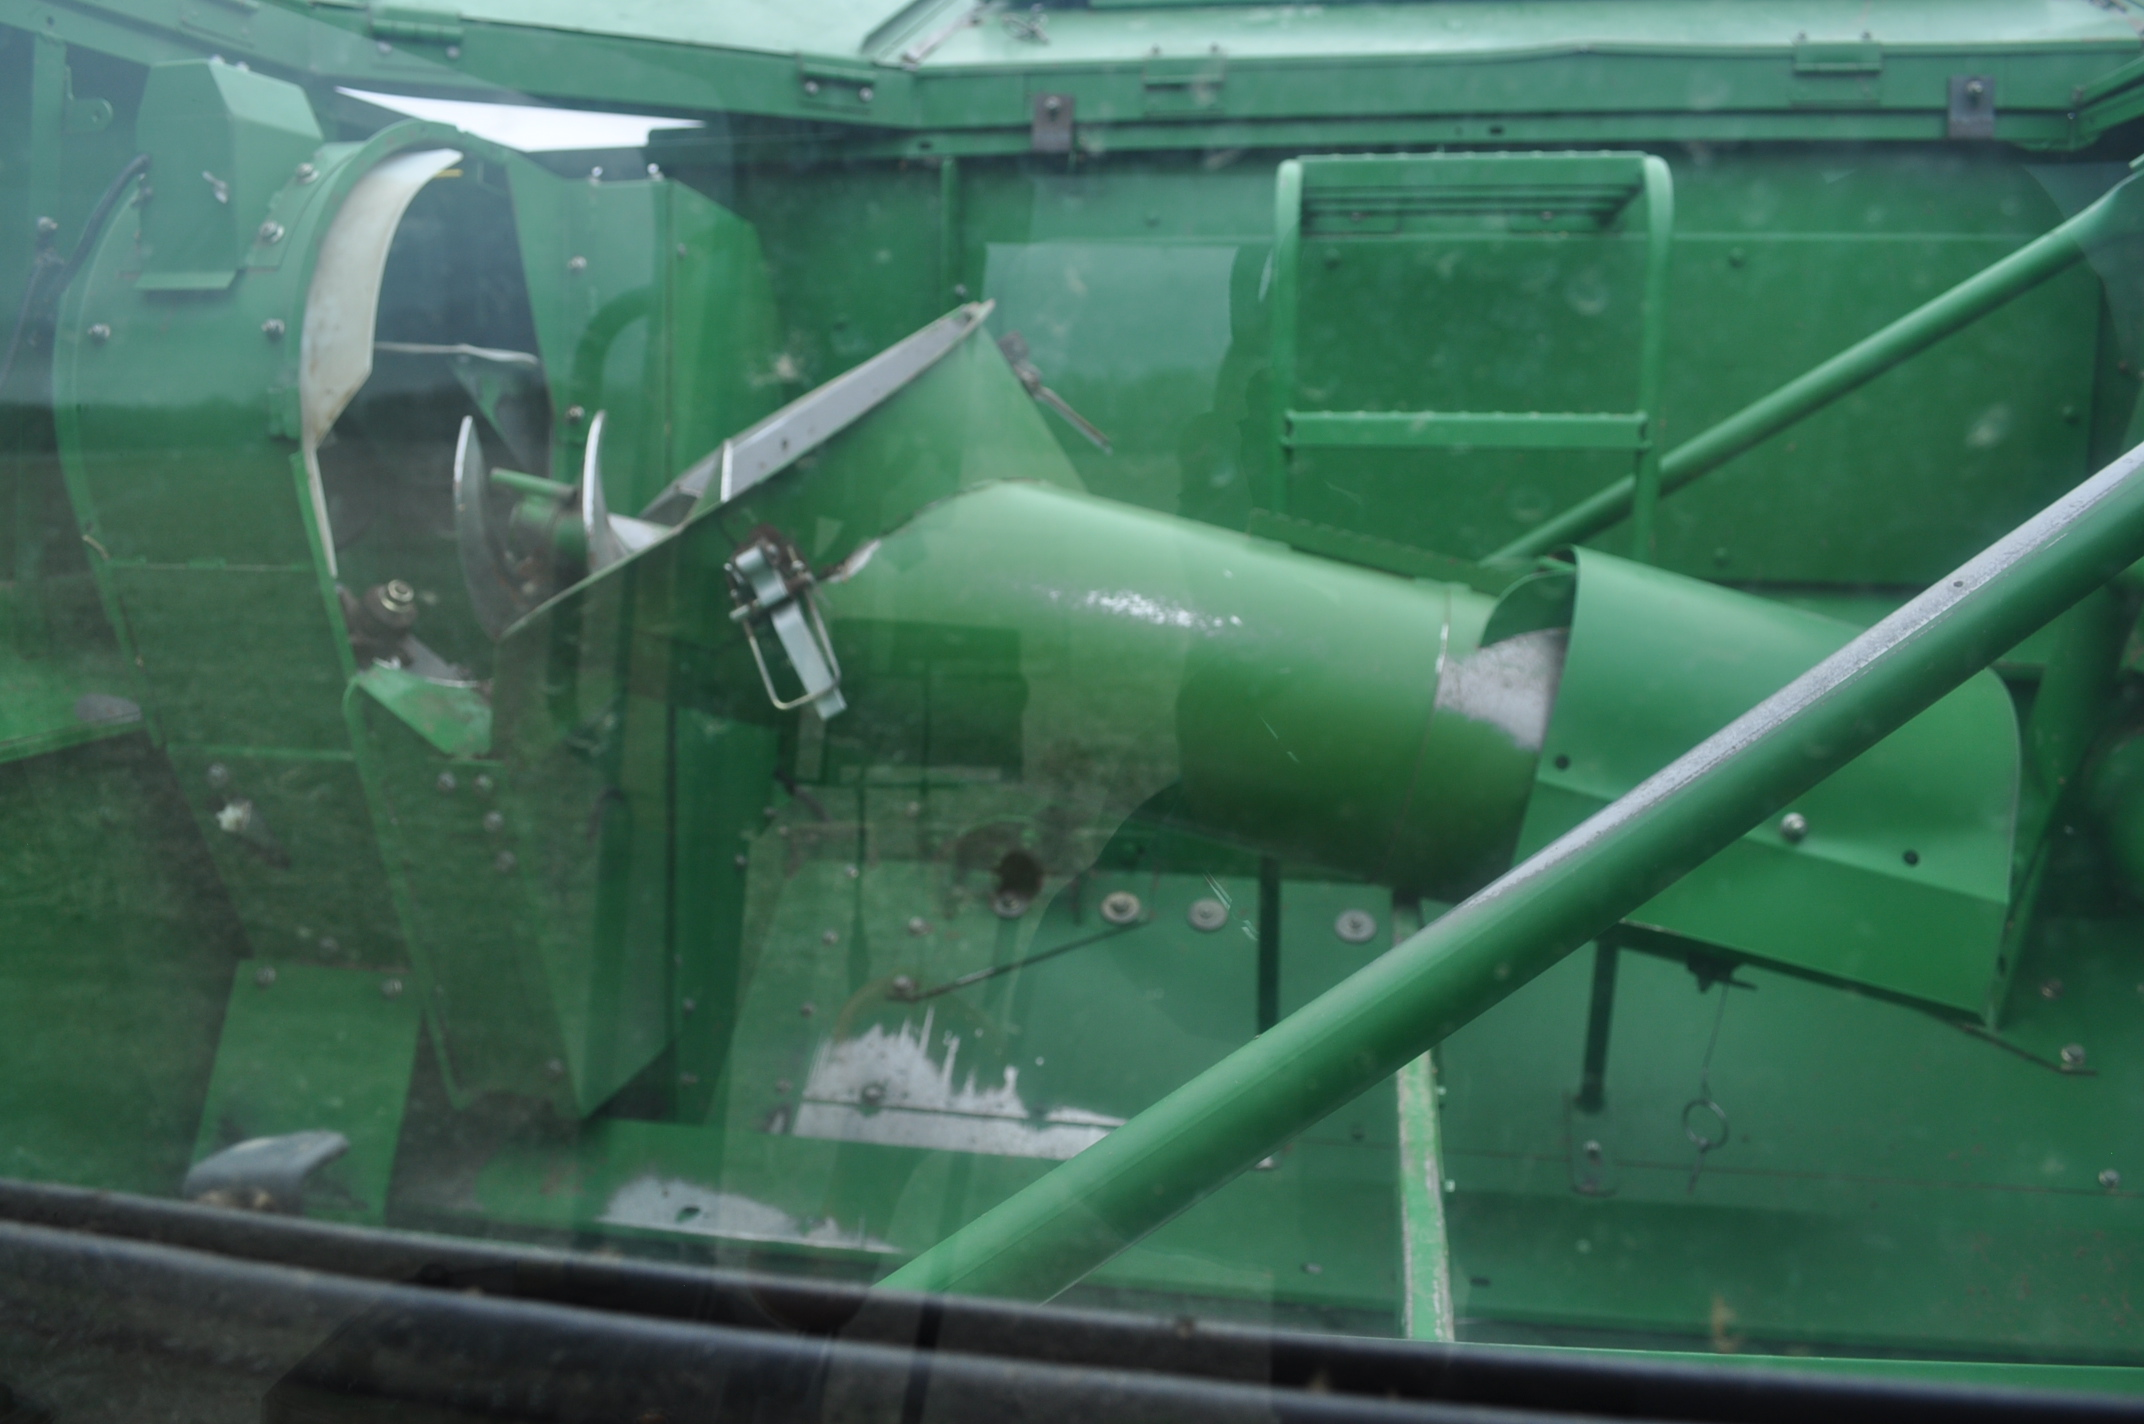 John Deere 9450 combine, 30.5-L32 drive, NEW 14.9-24 rear, chopper, chaff spreader, Mauer bin - Image 22 of 24